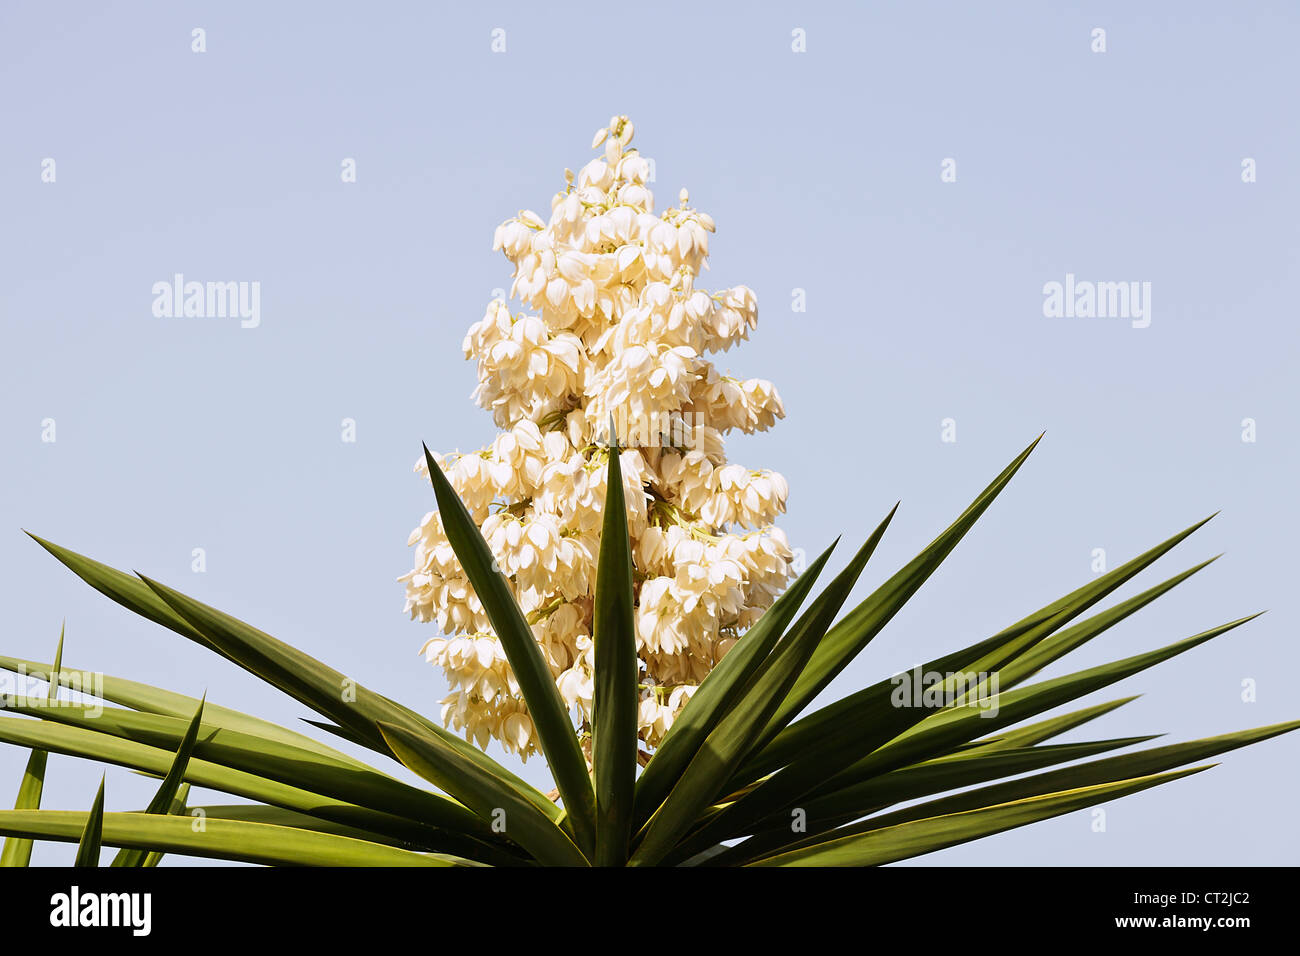 Yucca filamentosa, commonly known as Adam's needle in flower - Stock Image